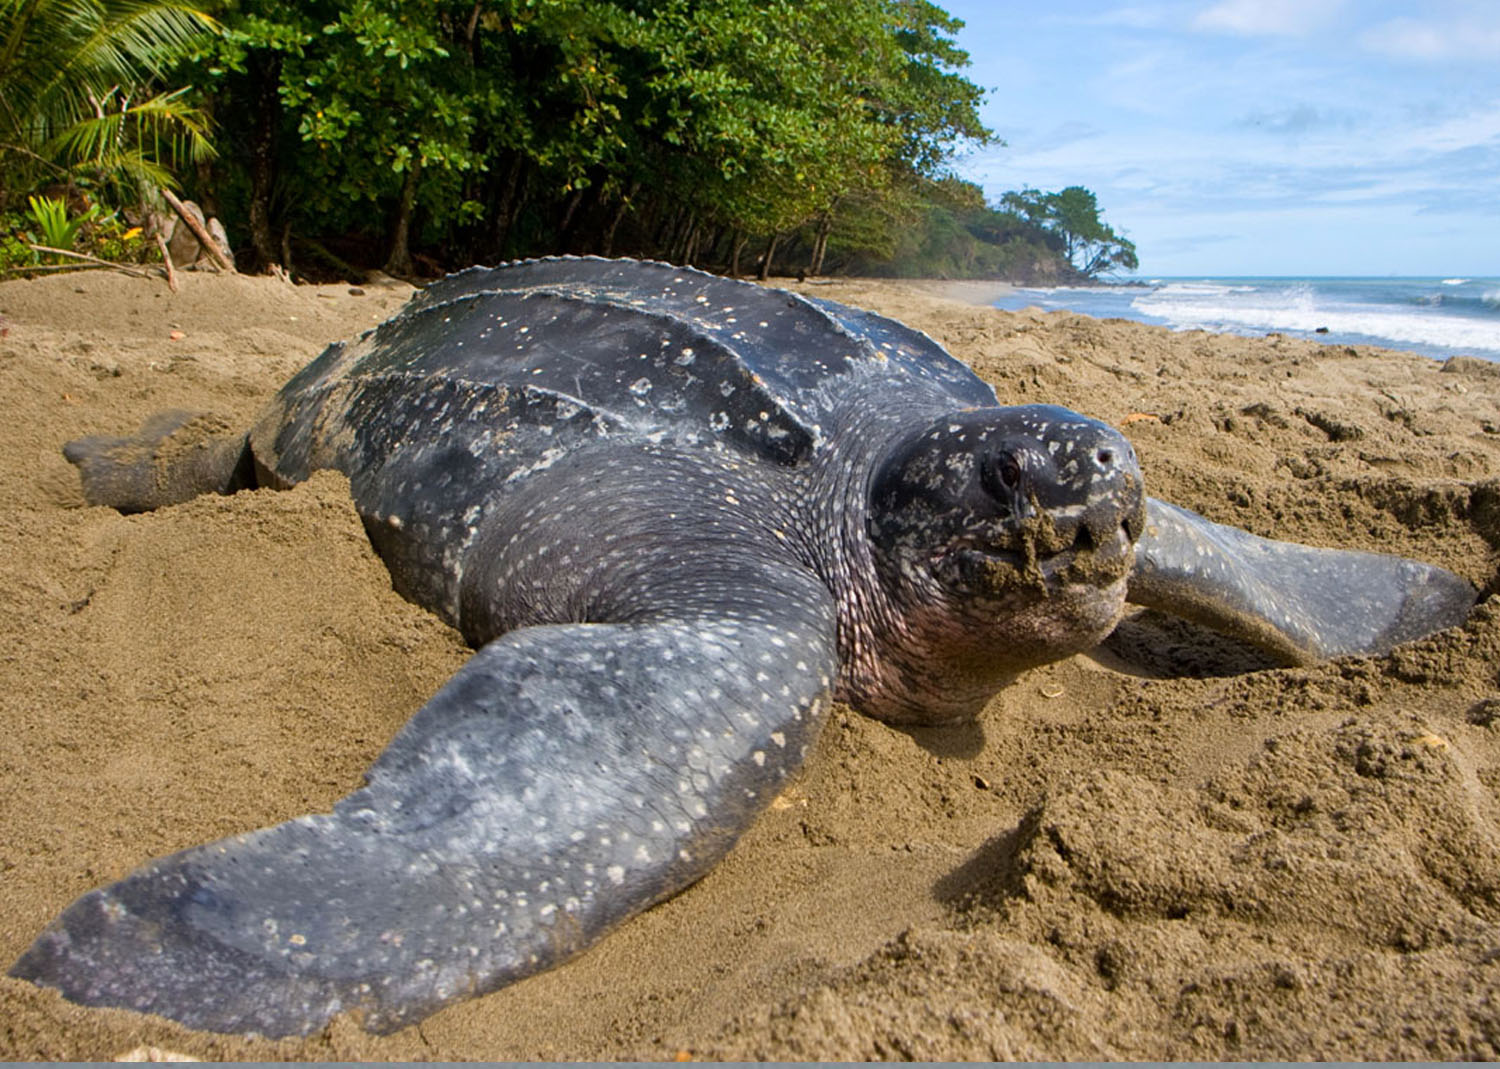 The Leatherback's Ecosystem Benefits